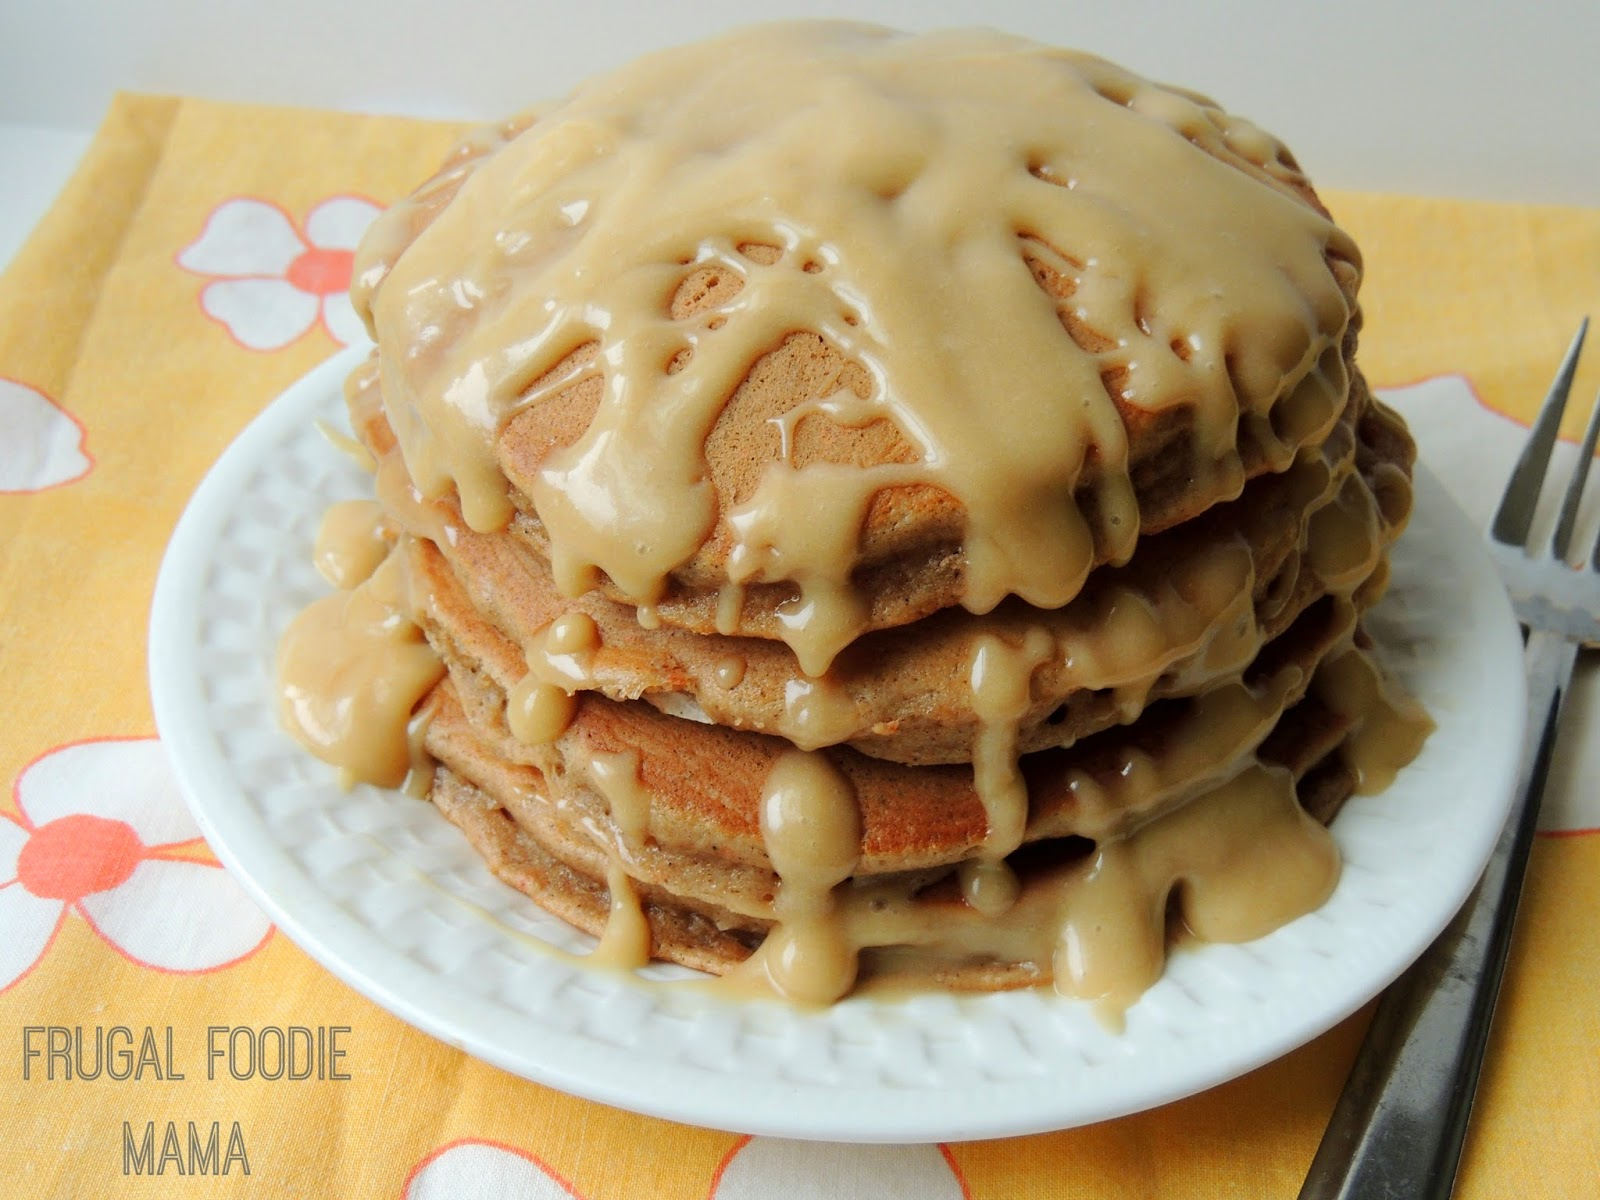 Who says you can't have cake for breakfast? ;) These carrot cake pancakes come together super quick with the help of a boxed mix, leaving you plenty of time to whip up the decadent Biscoff cream cheese glaze to pour over top of these.